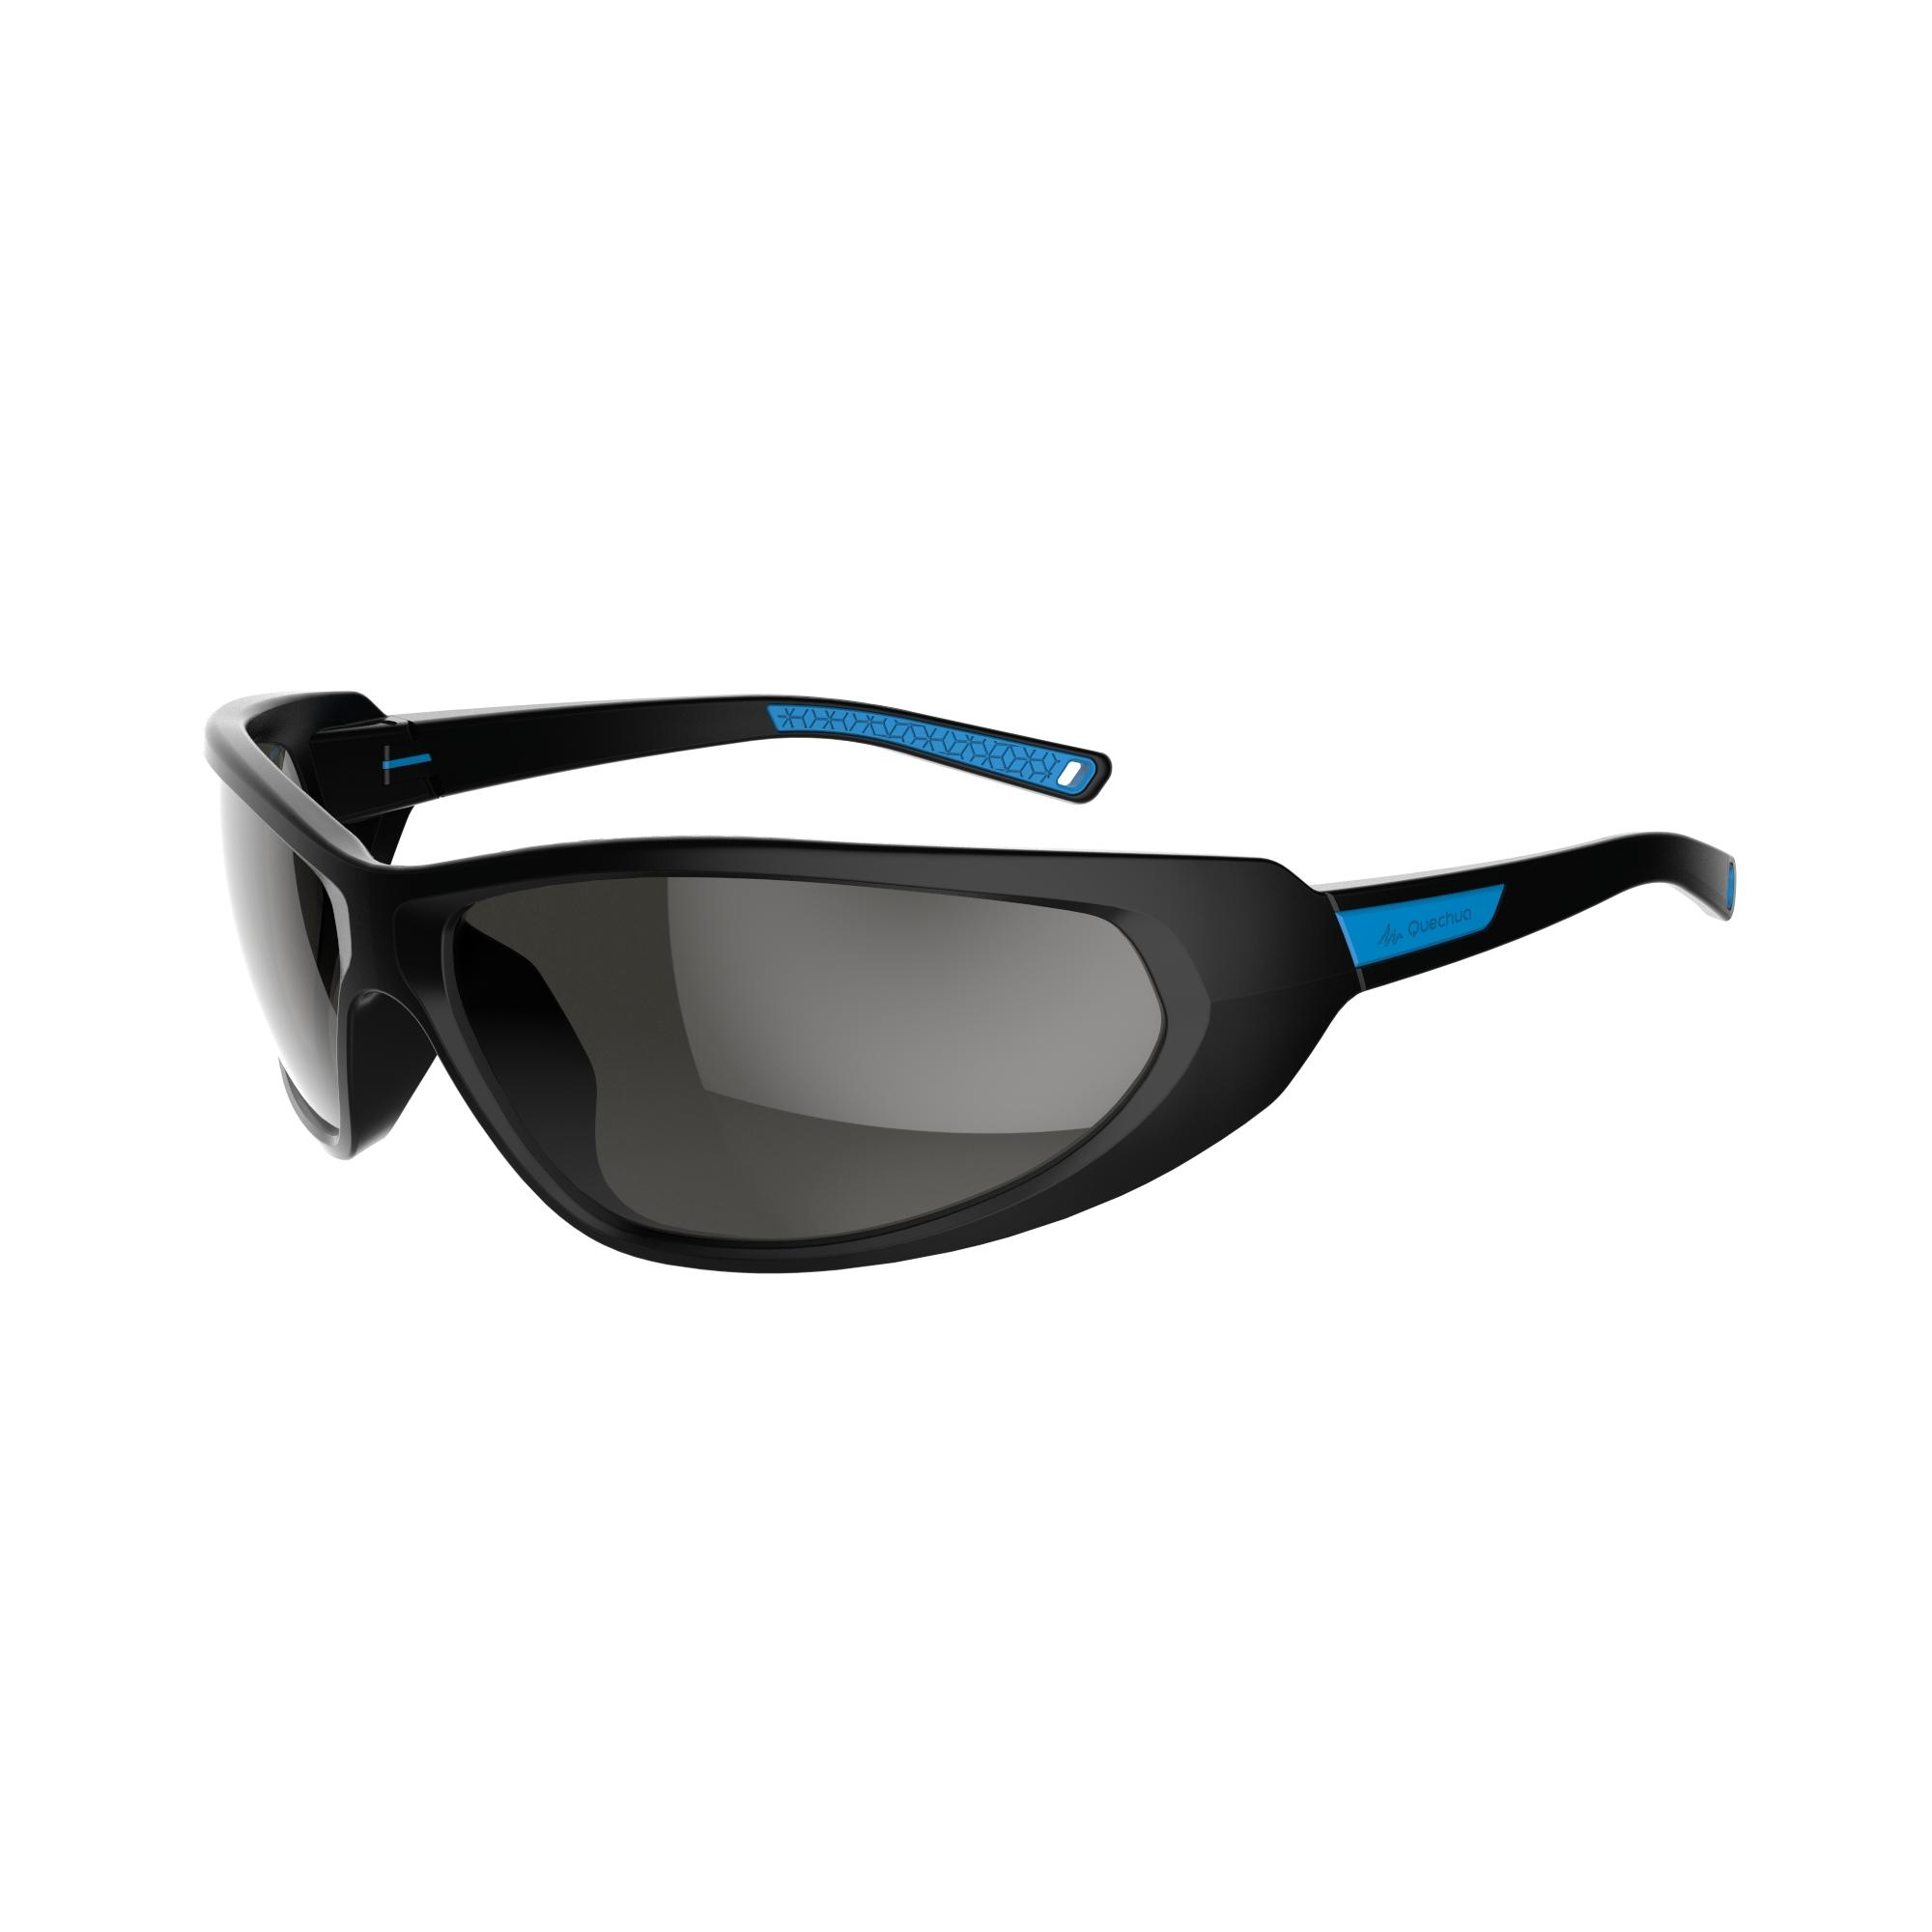 Mh550 4 Blue Category Sunglasses Blackamp; Hiking b76yfg